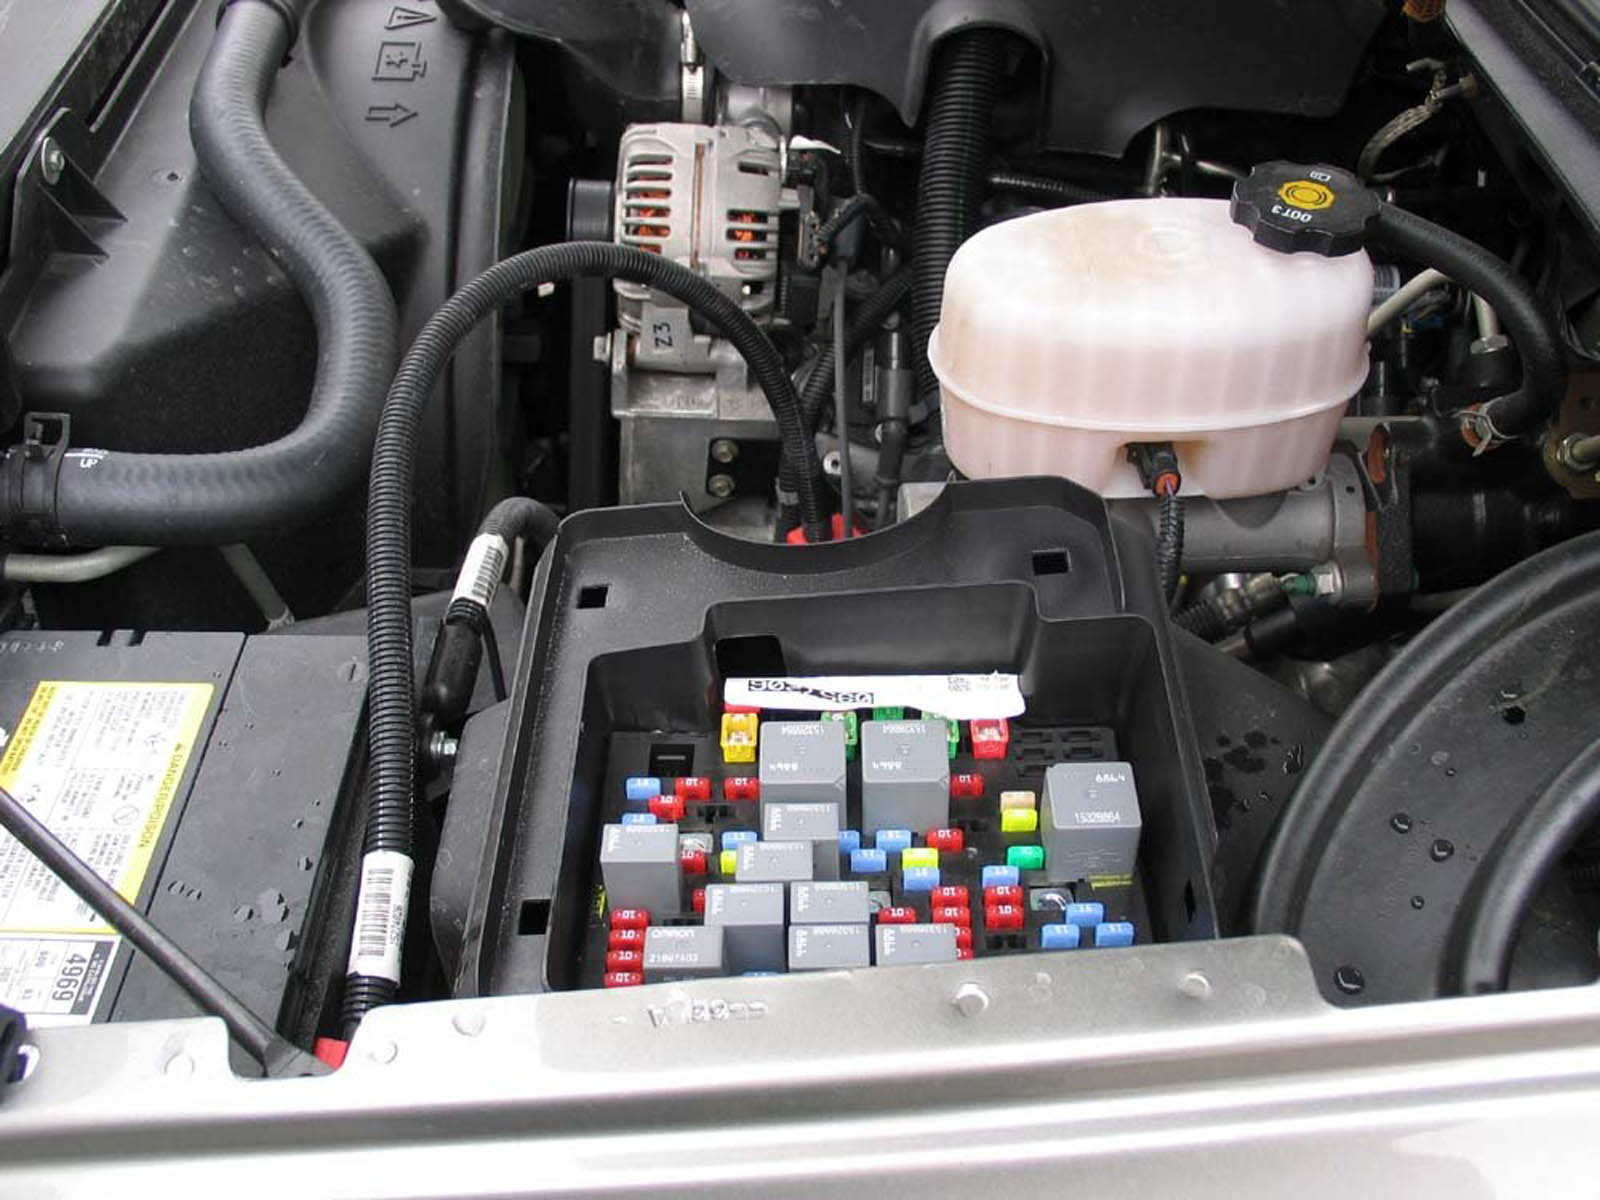 MMMay 27 Fuse Box 04 69845 chevrolet silverado gmt800 1999 2006 fuse box diagram chevroletforum 99 Suburban Transmission Diagram at bakdesigns.co